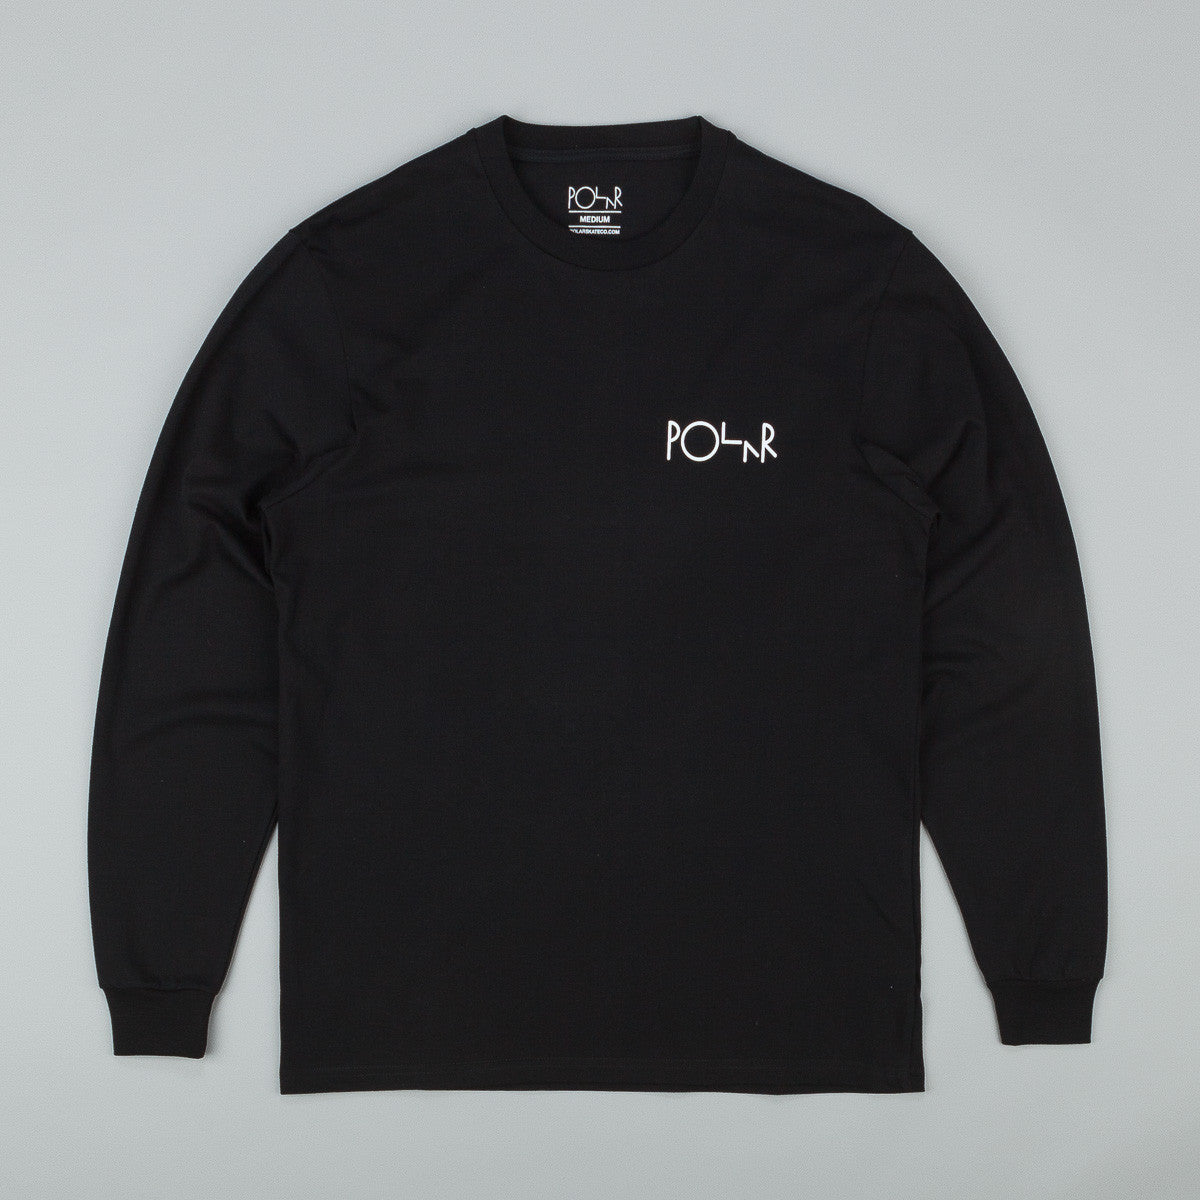 Polar Fill Logo Behind The Curtain Longsleeve T-Shirt - Black / White